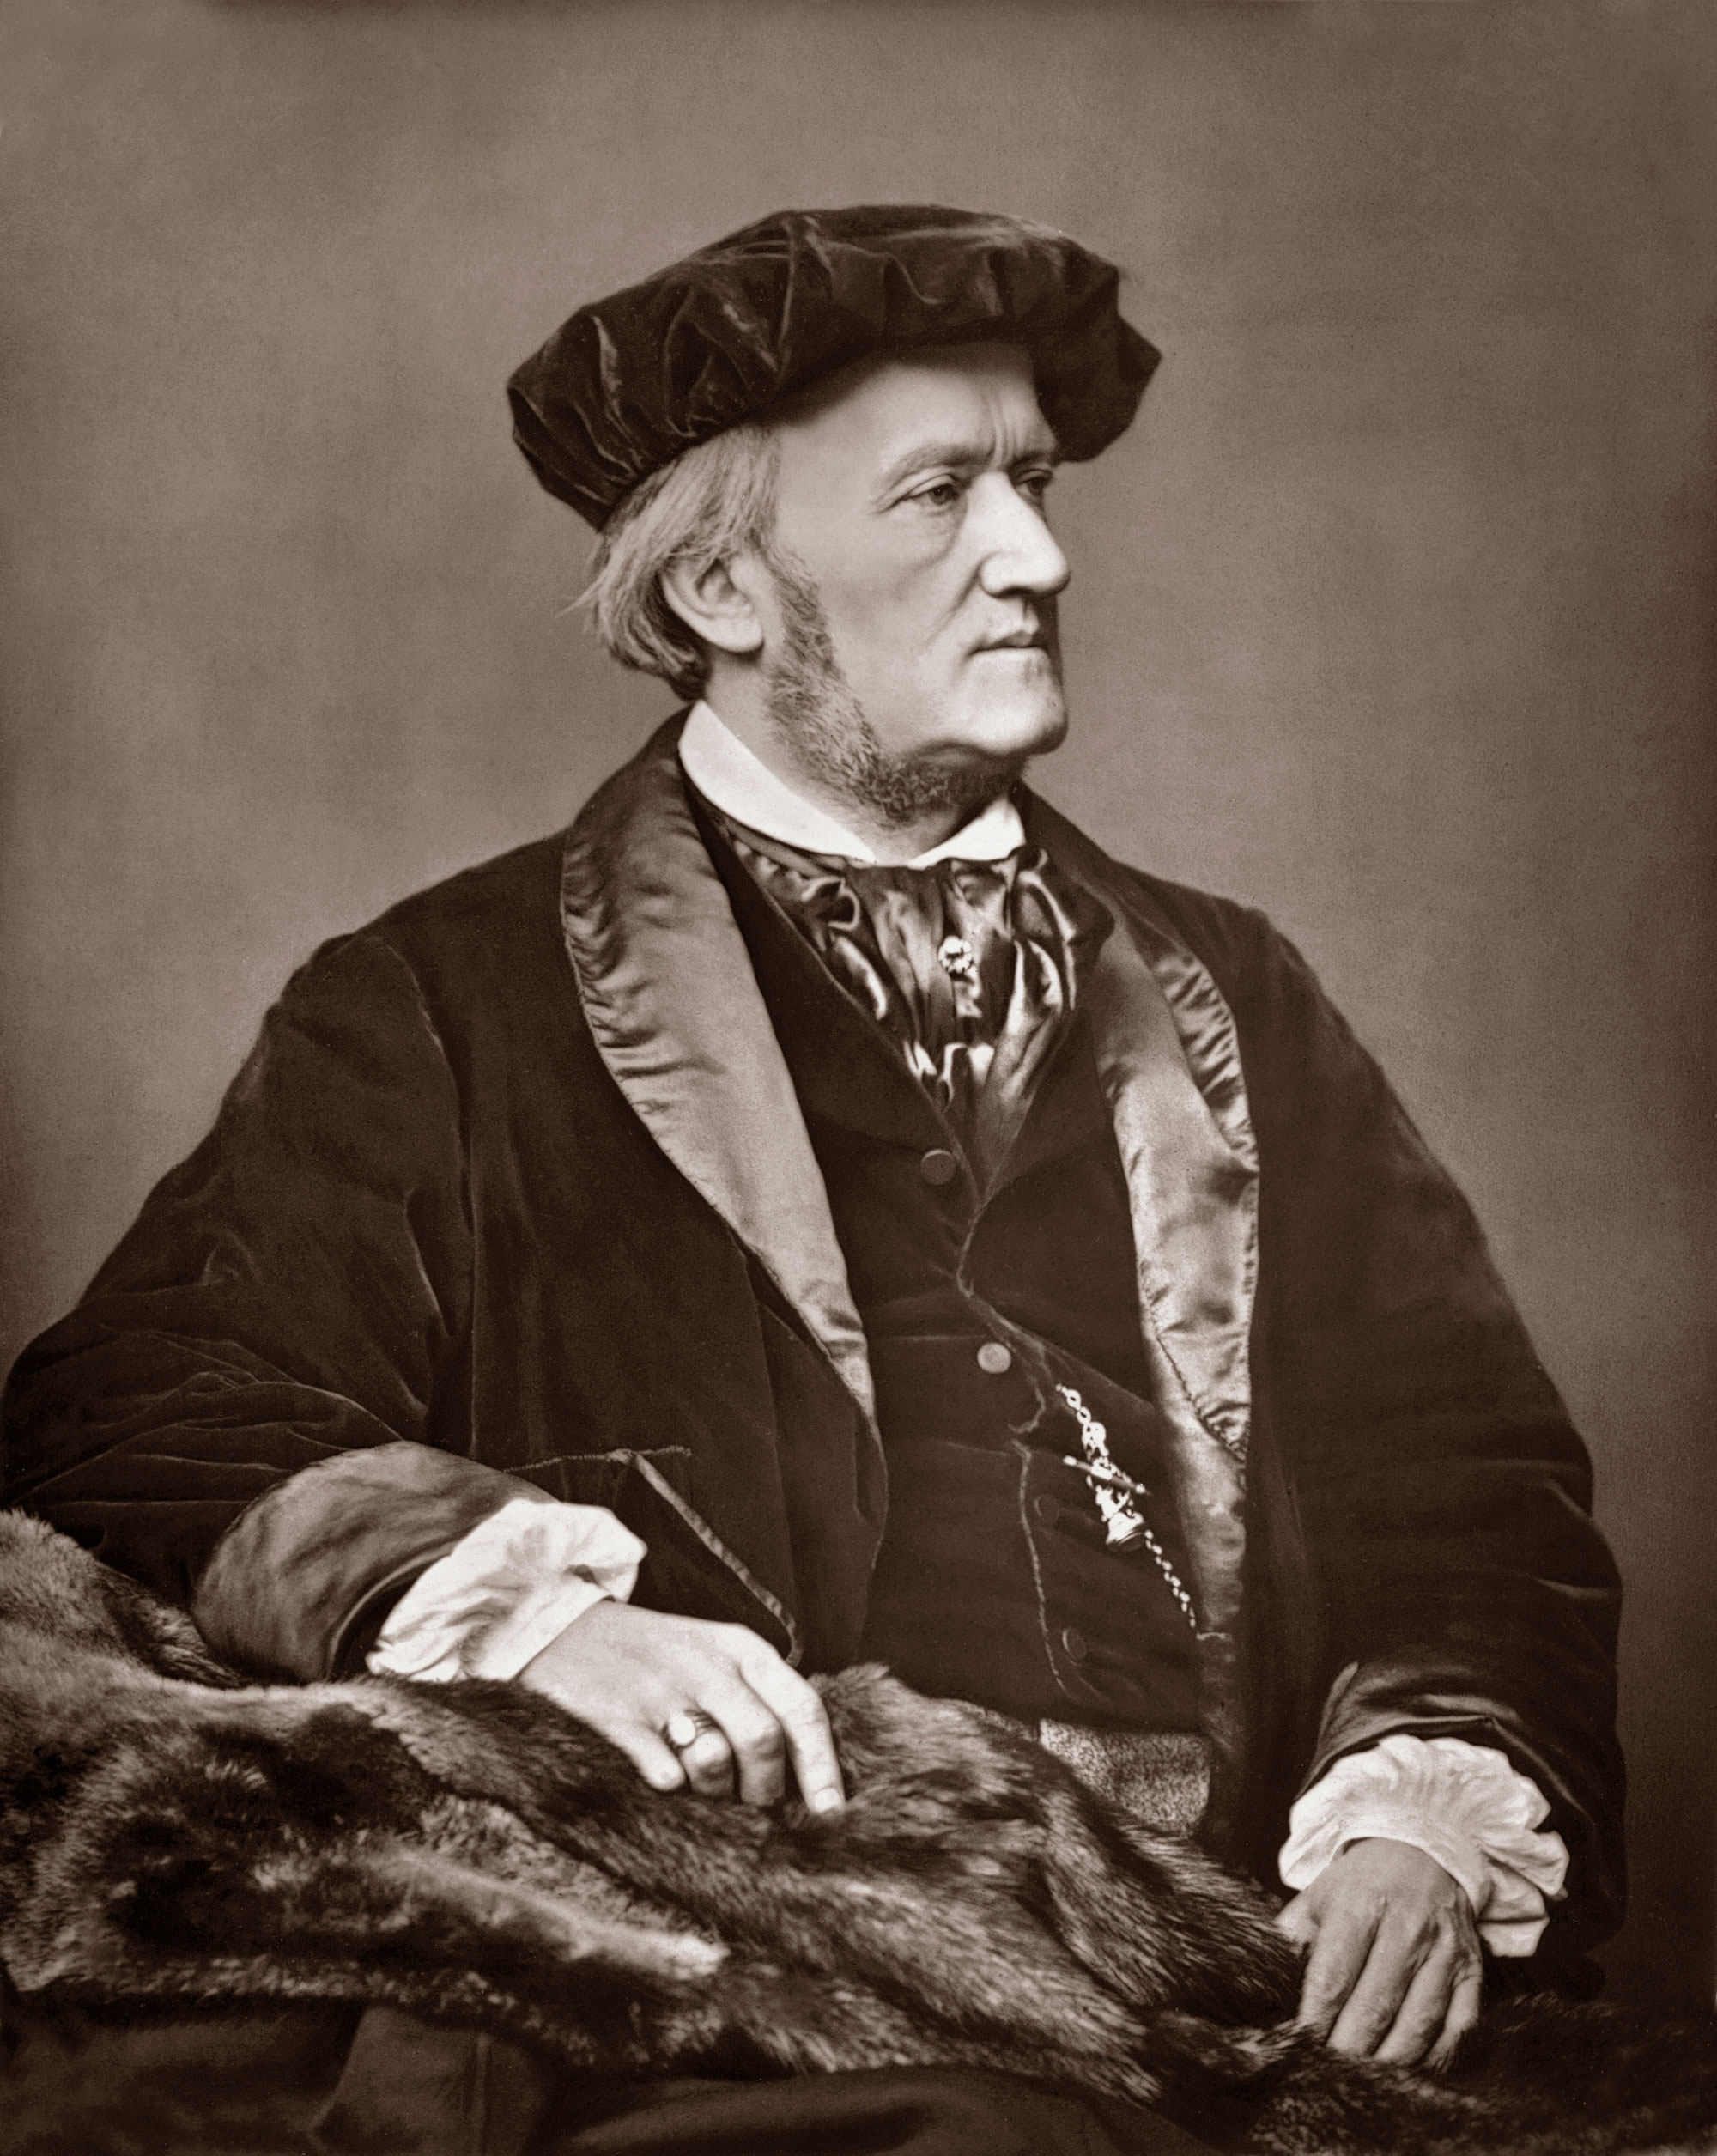 Portrait du compositeur allemand Richard Wagner (1813-1883).